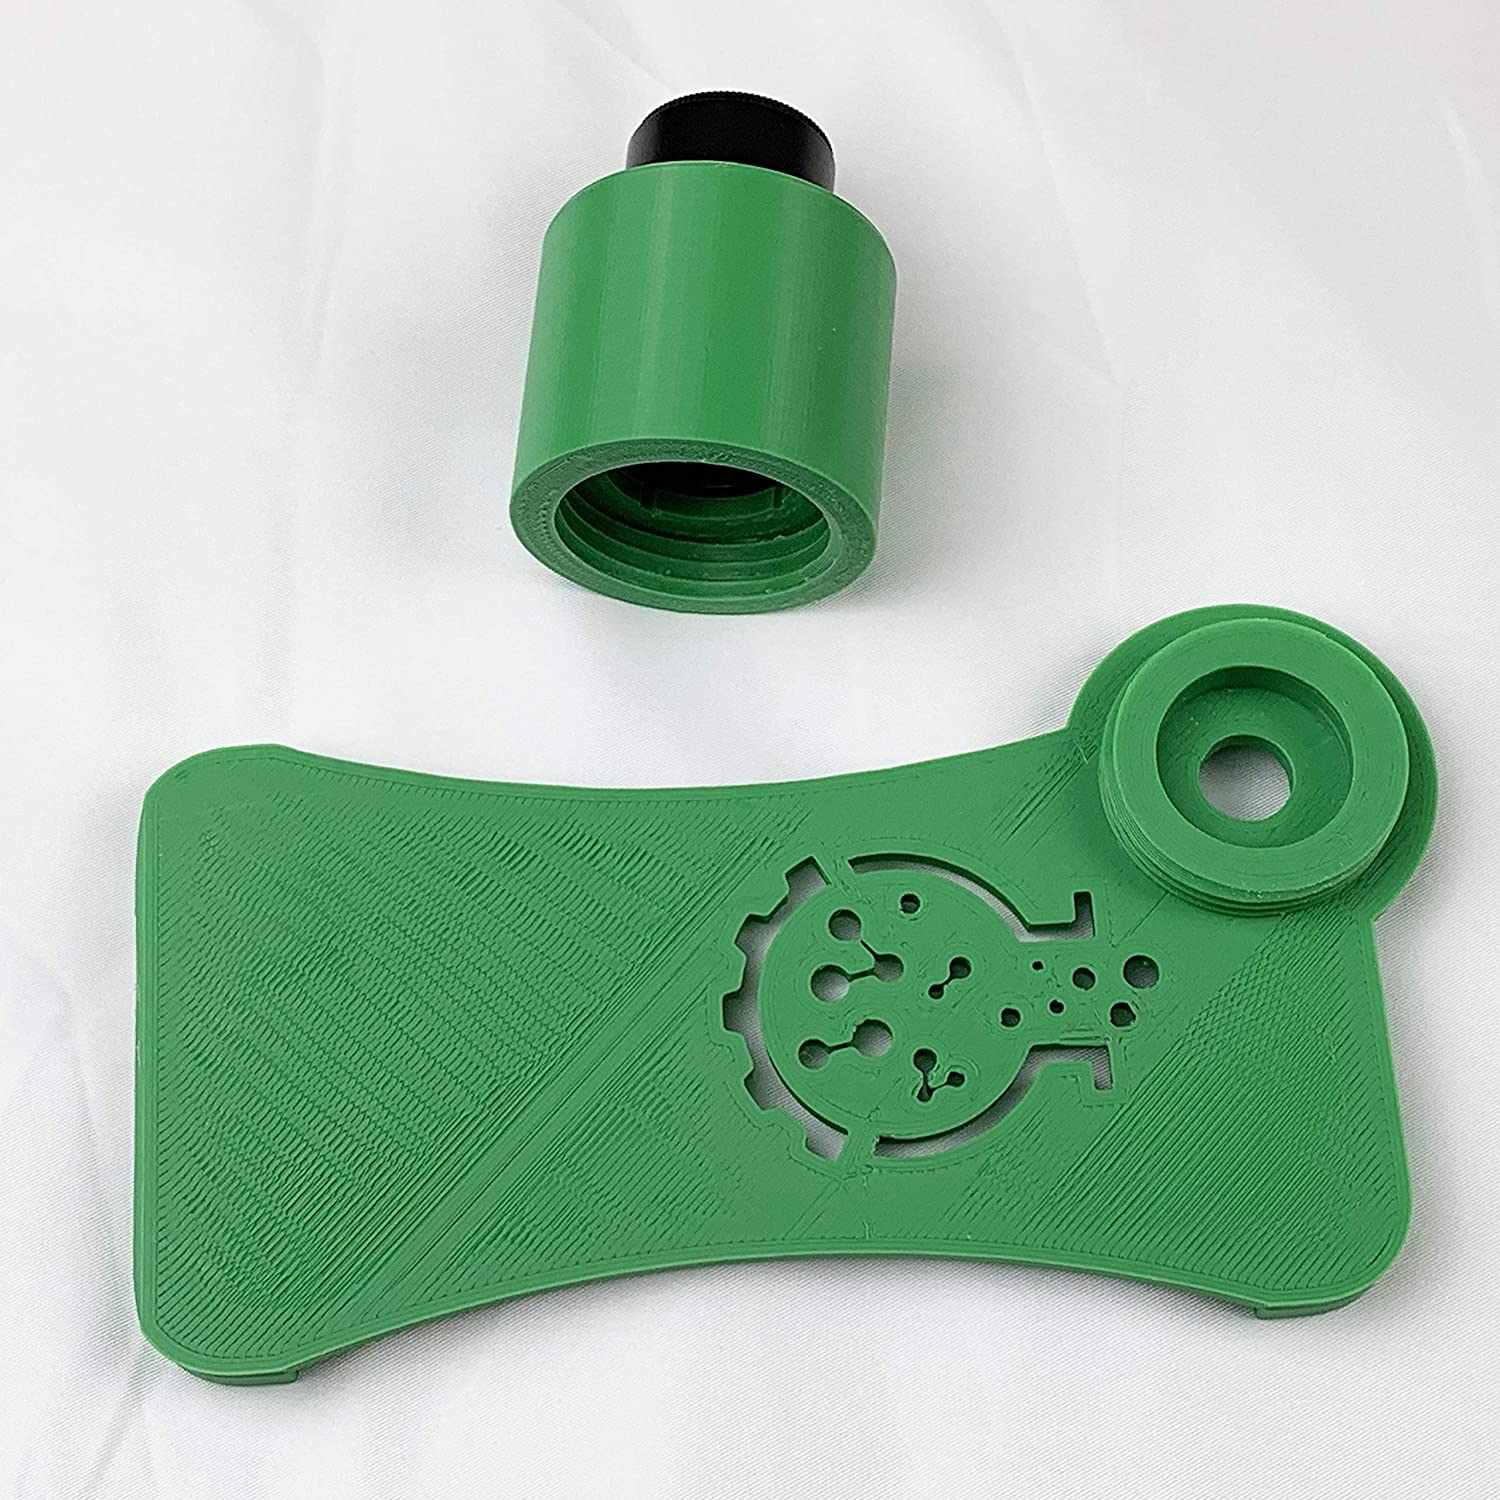 LaBOT Microscope iPhone Camera Adapter iPhone XR, Green Case only, Without Lens